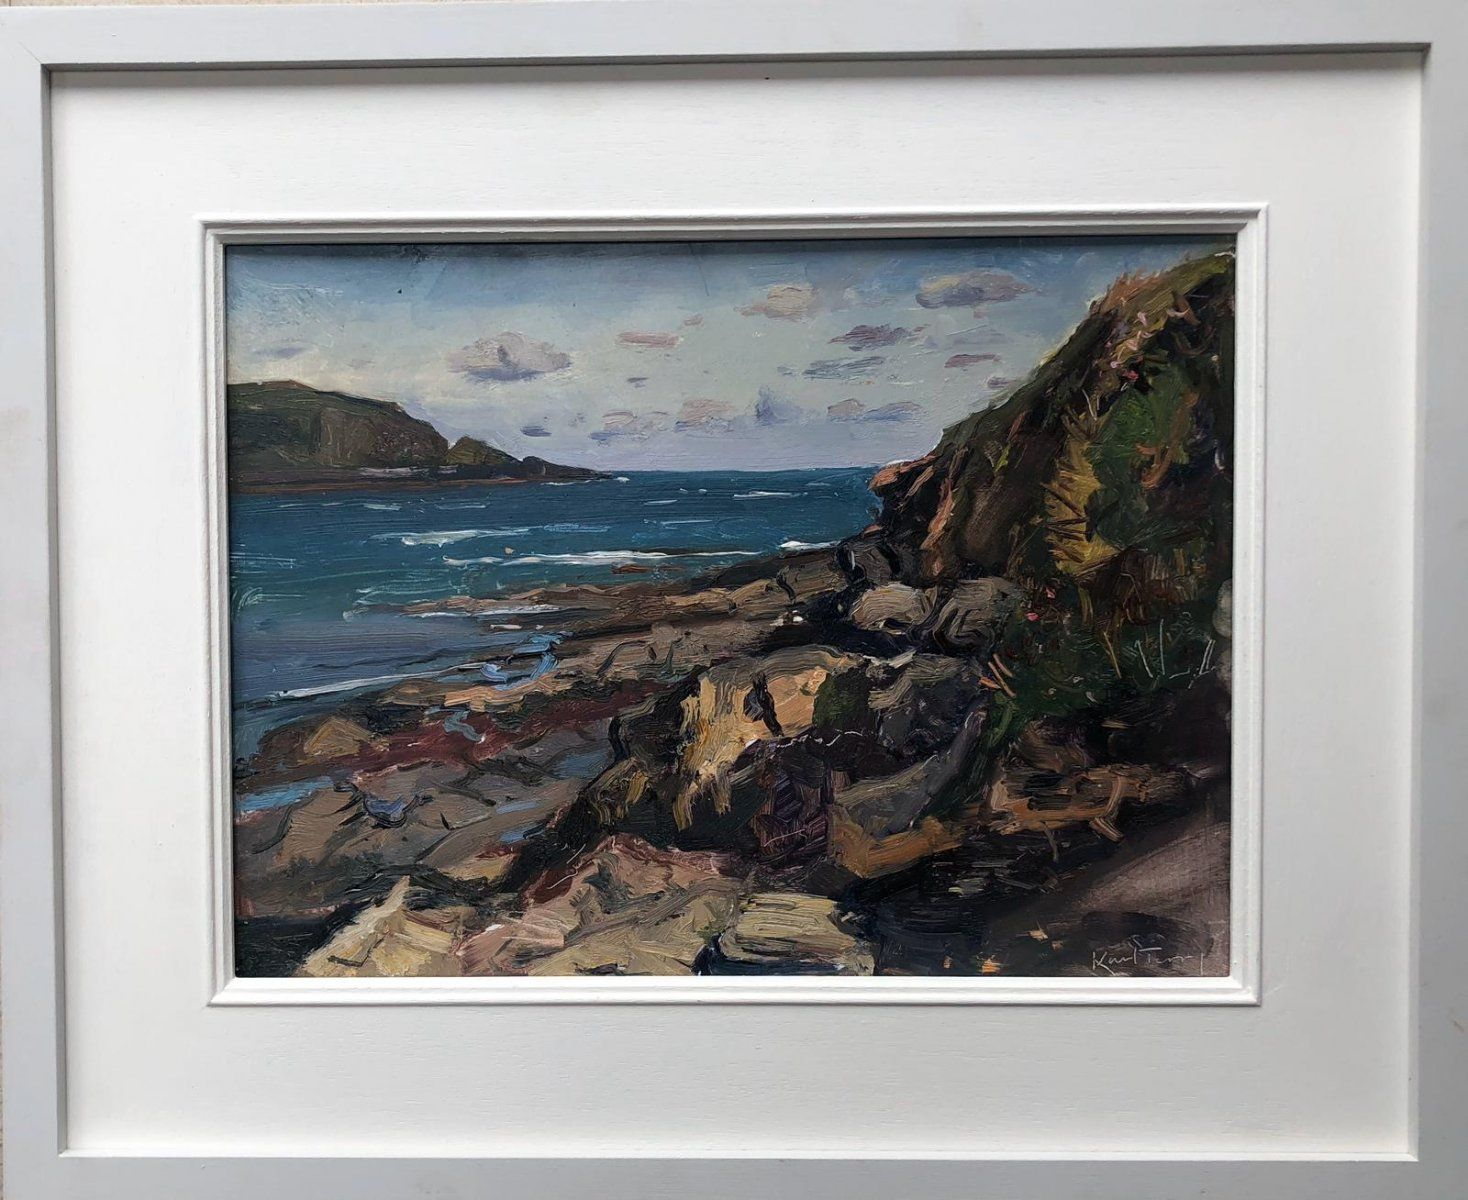 """KARL TERRY   22. SUNLIT ROCKS, DAYMER BAY   OIL ON BOARD   29 x 39 cm   £950<br /><a class=""""buy-button"""" href=""""mailto:info@dacre-art.com?subject=Website%20Enquiry"""">Enquire</a>"""